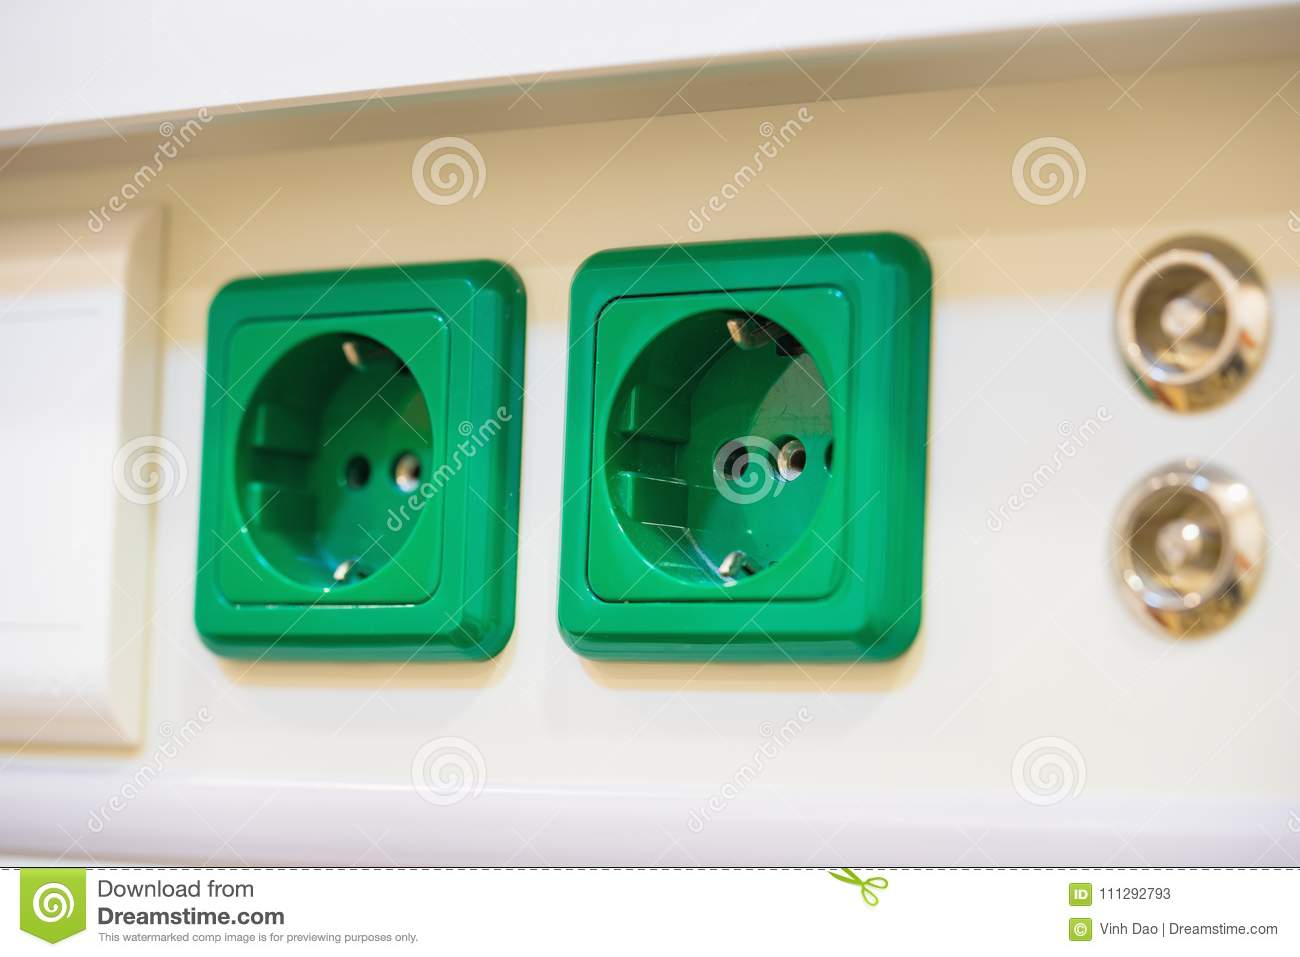 Universal electrical sockets on bedhead in hospital